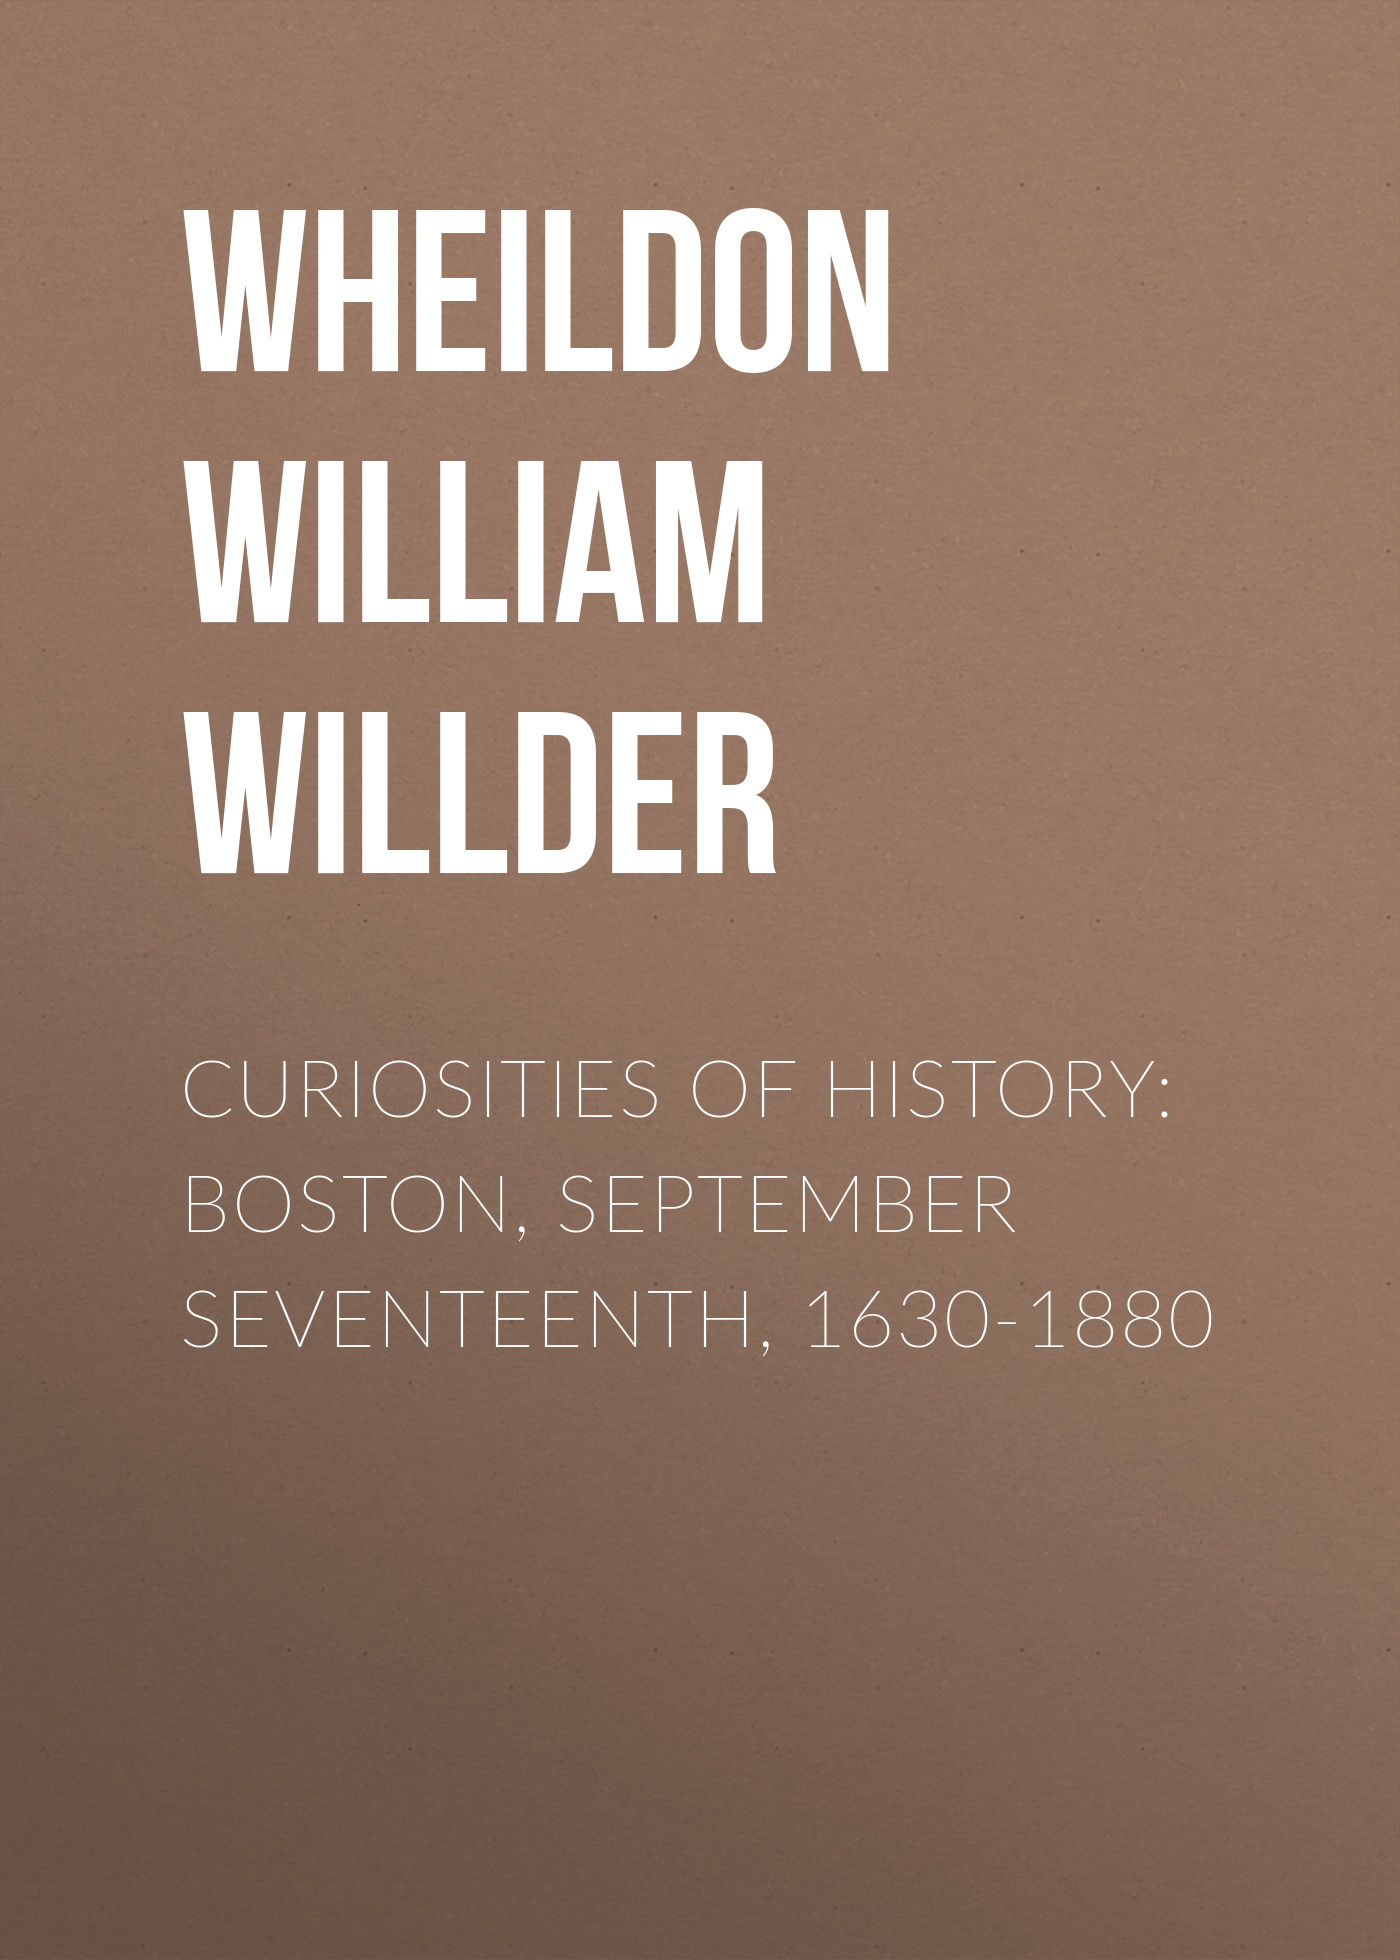 Wheildon William Willder Curiosities of History: Boston, September Seventeenth, 1630-1880 boston – a topographical history 3e enl